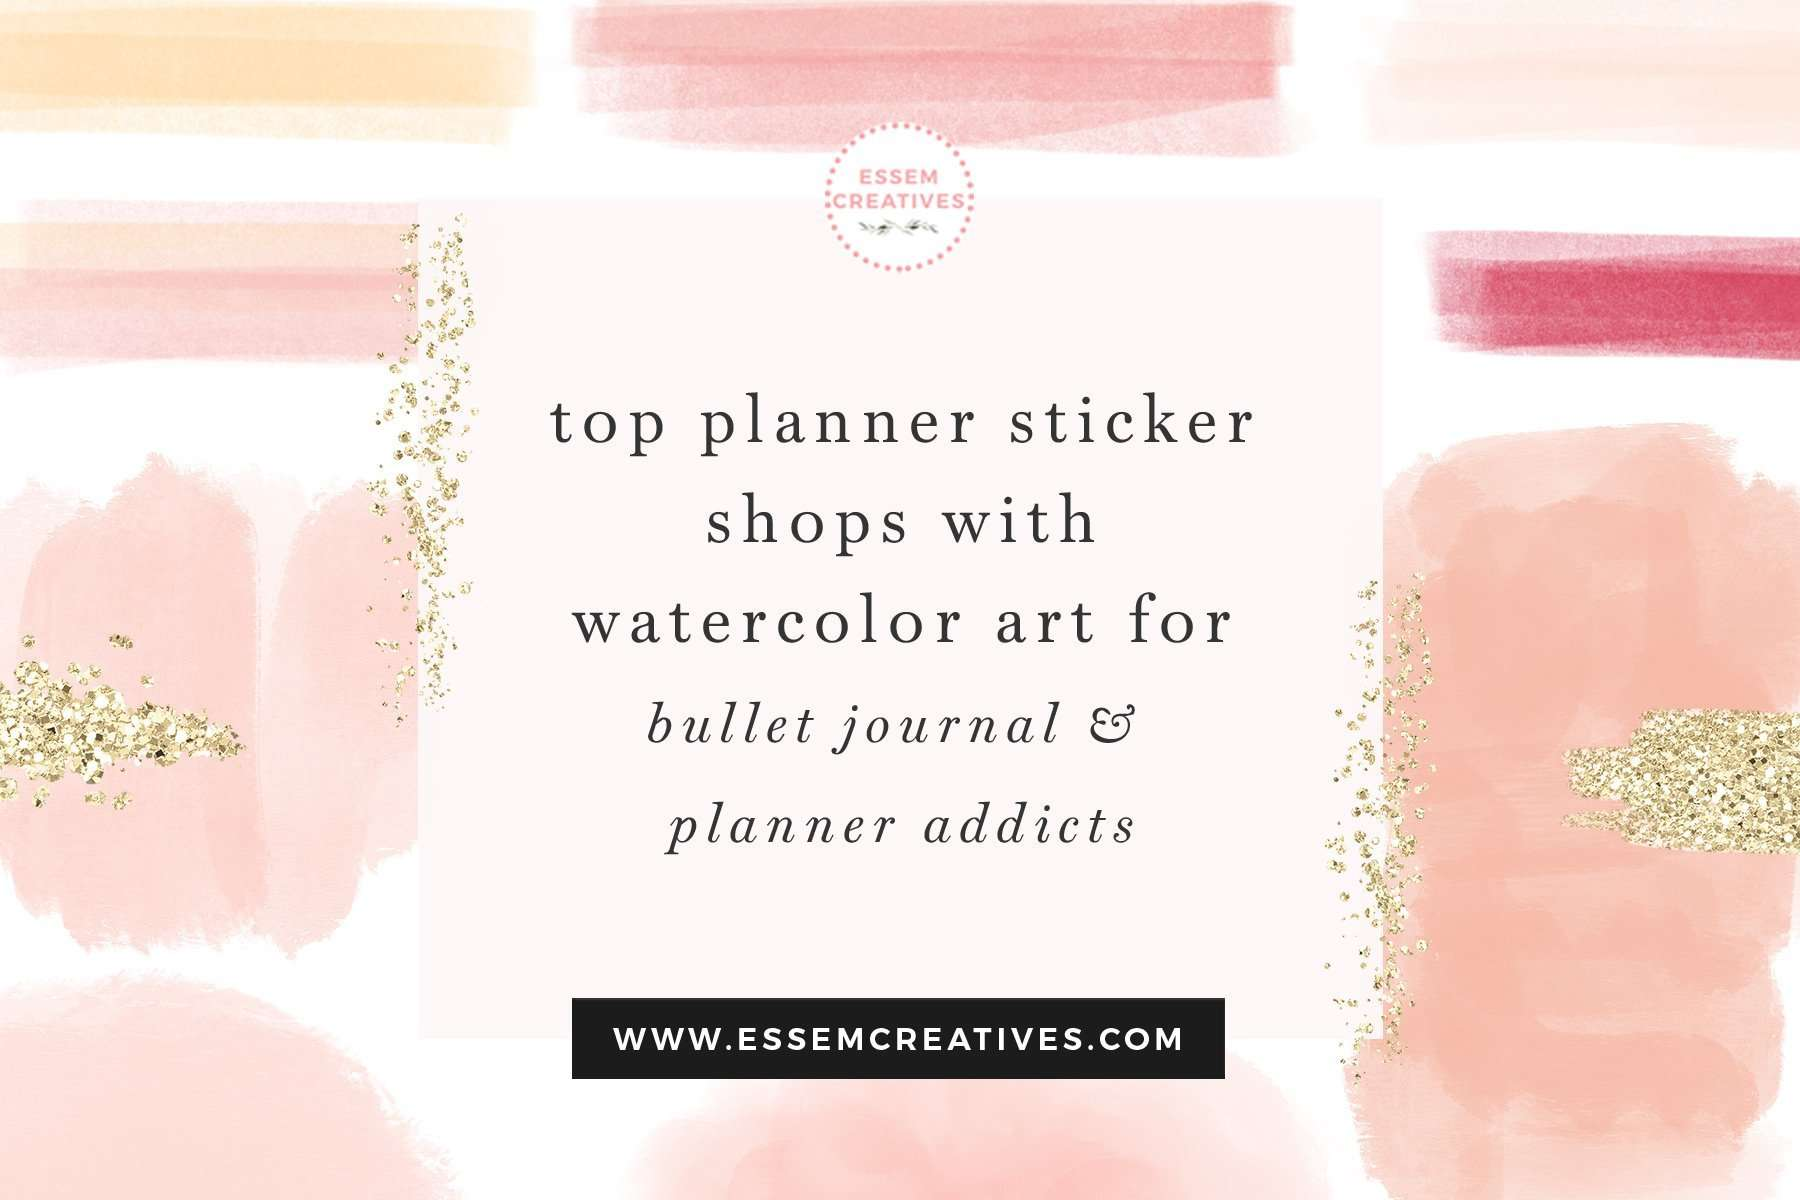 Are you a planner addict and love to use pretty stickers to jazz up your planner? Or do you prefer sticking to (pun totally intended) functional stickers like flags & tags to make sure you don't miss your appointments? Whether you use Erin Condren Planner, TN, Happy Planner, Bullet Journal or any other planner, if you're in the market for some planner sticker fun, here's a list of my favourites. Click to see more>> #plannerstickers #stickershops #planneraddict #bujo #bulletjournal #stickers